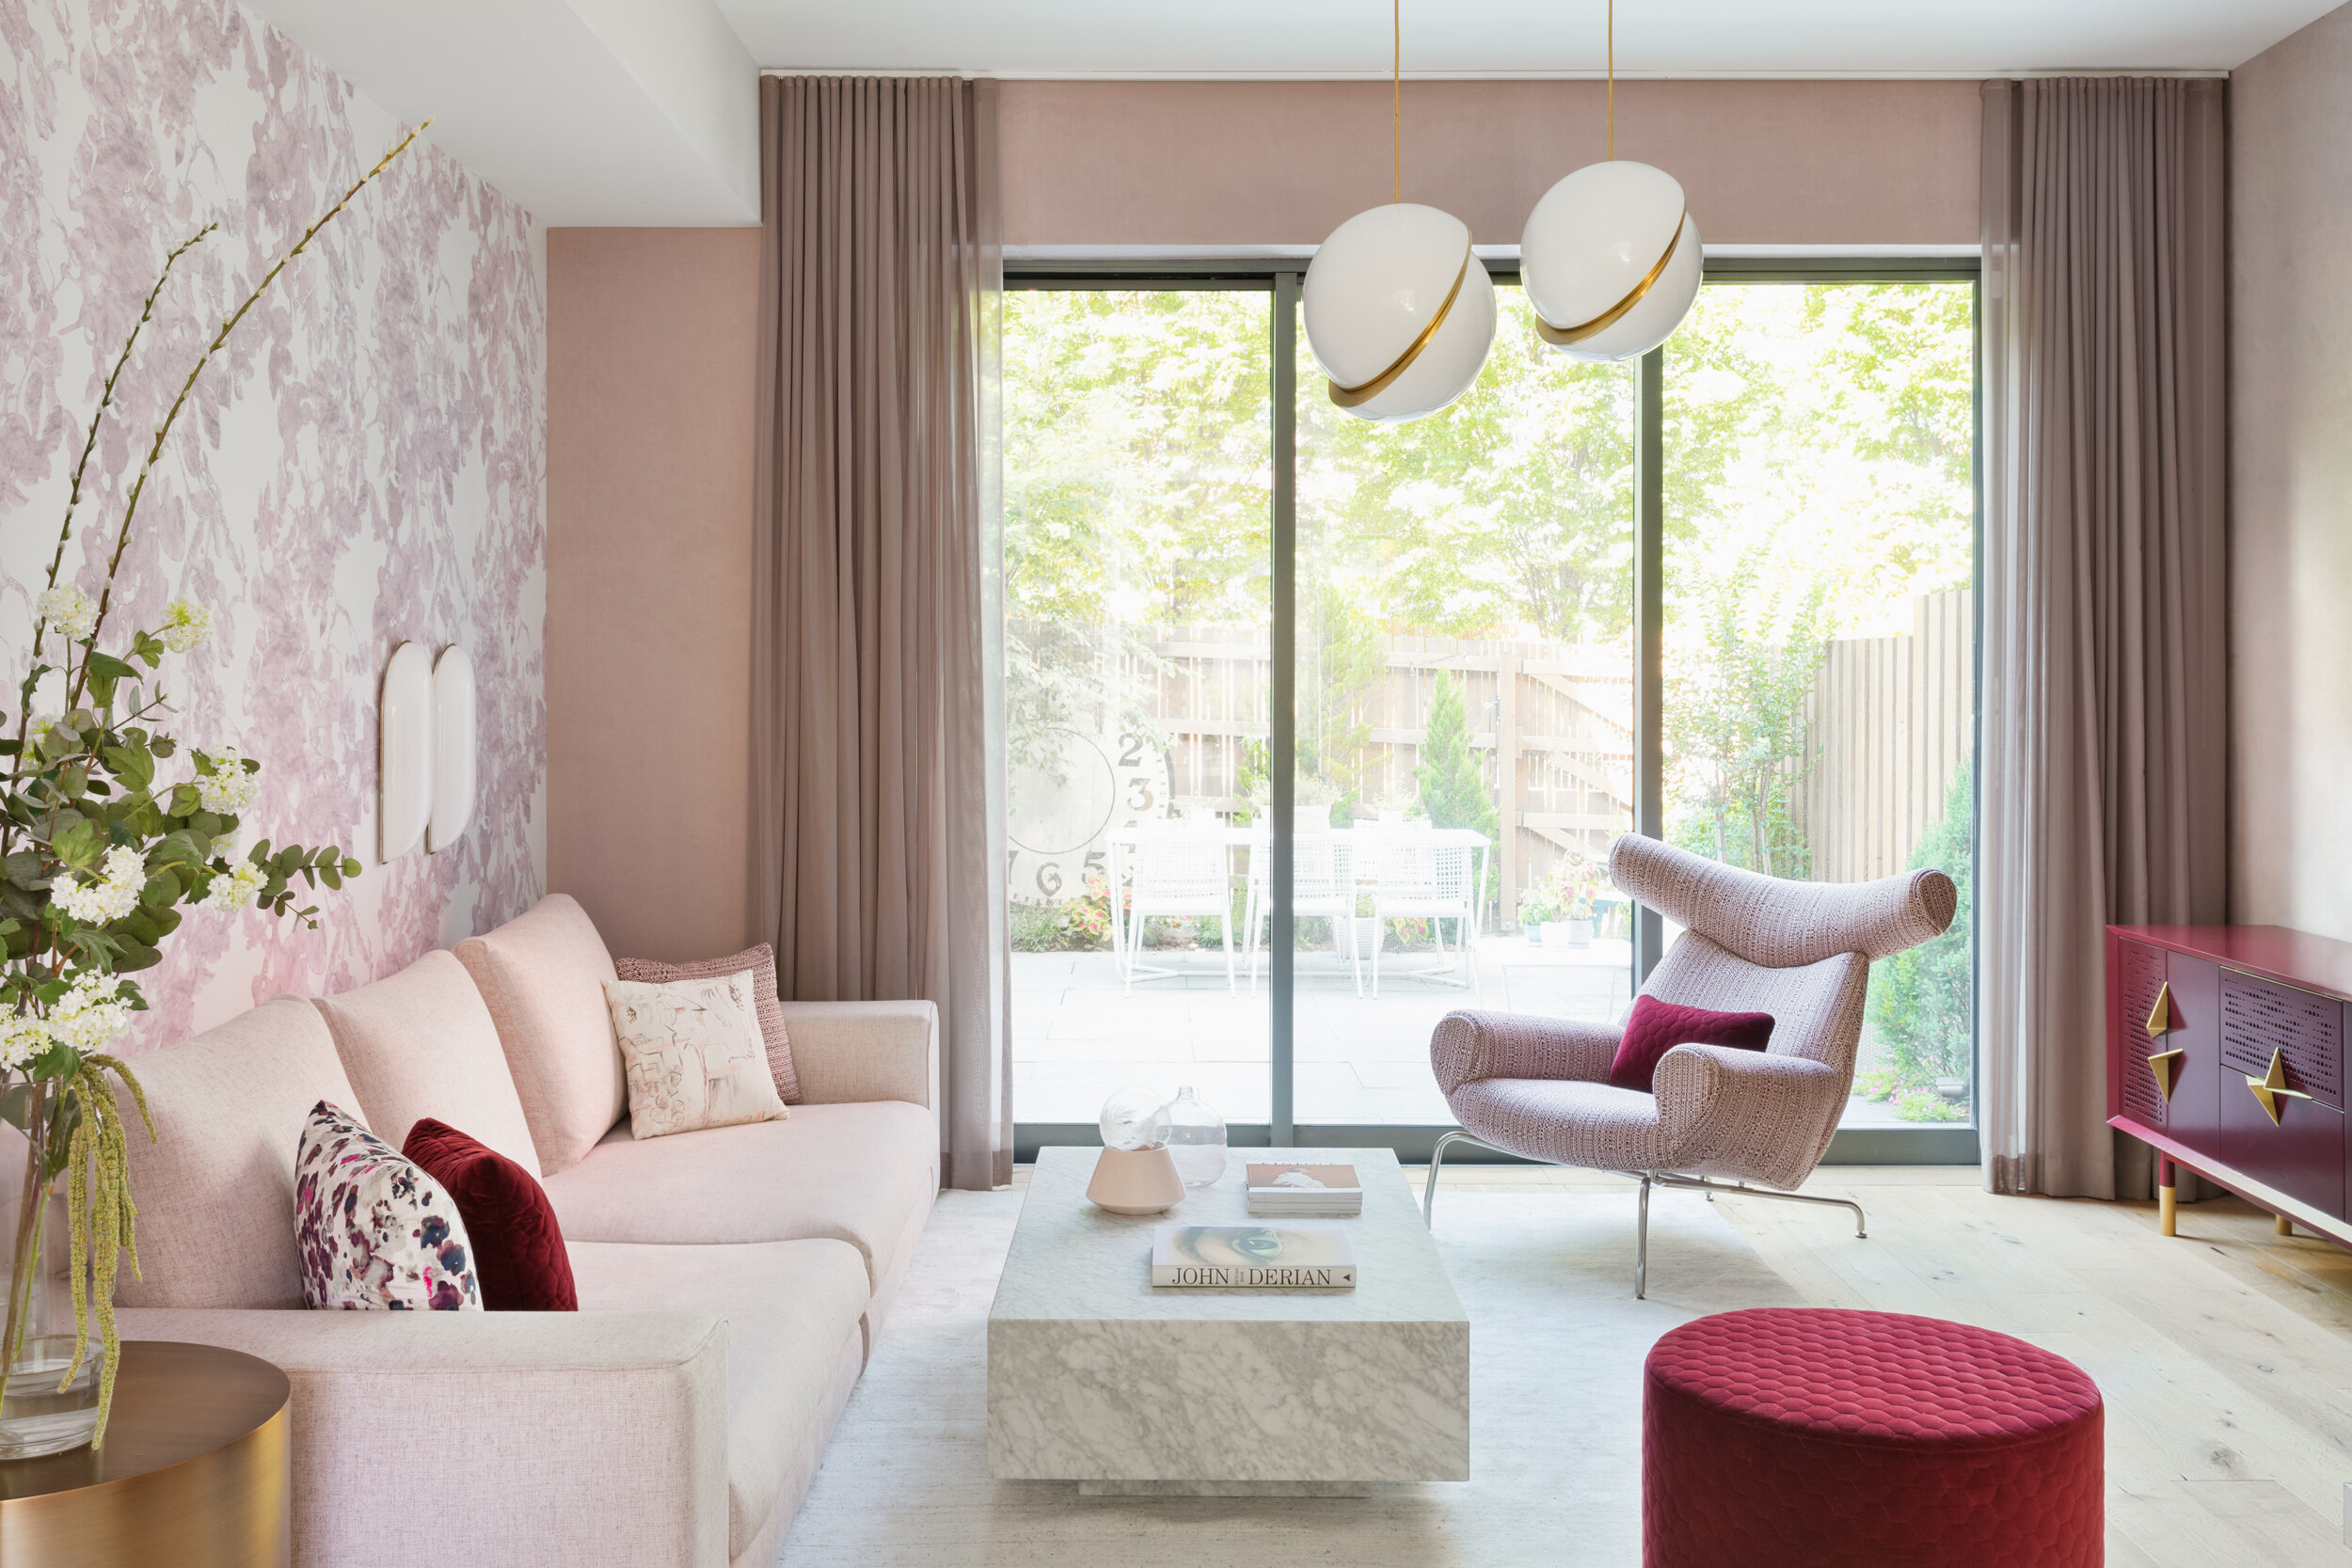 Will Ellis Photography Architecture And Interior Design Photographer New York City